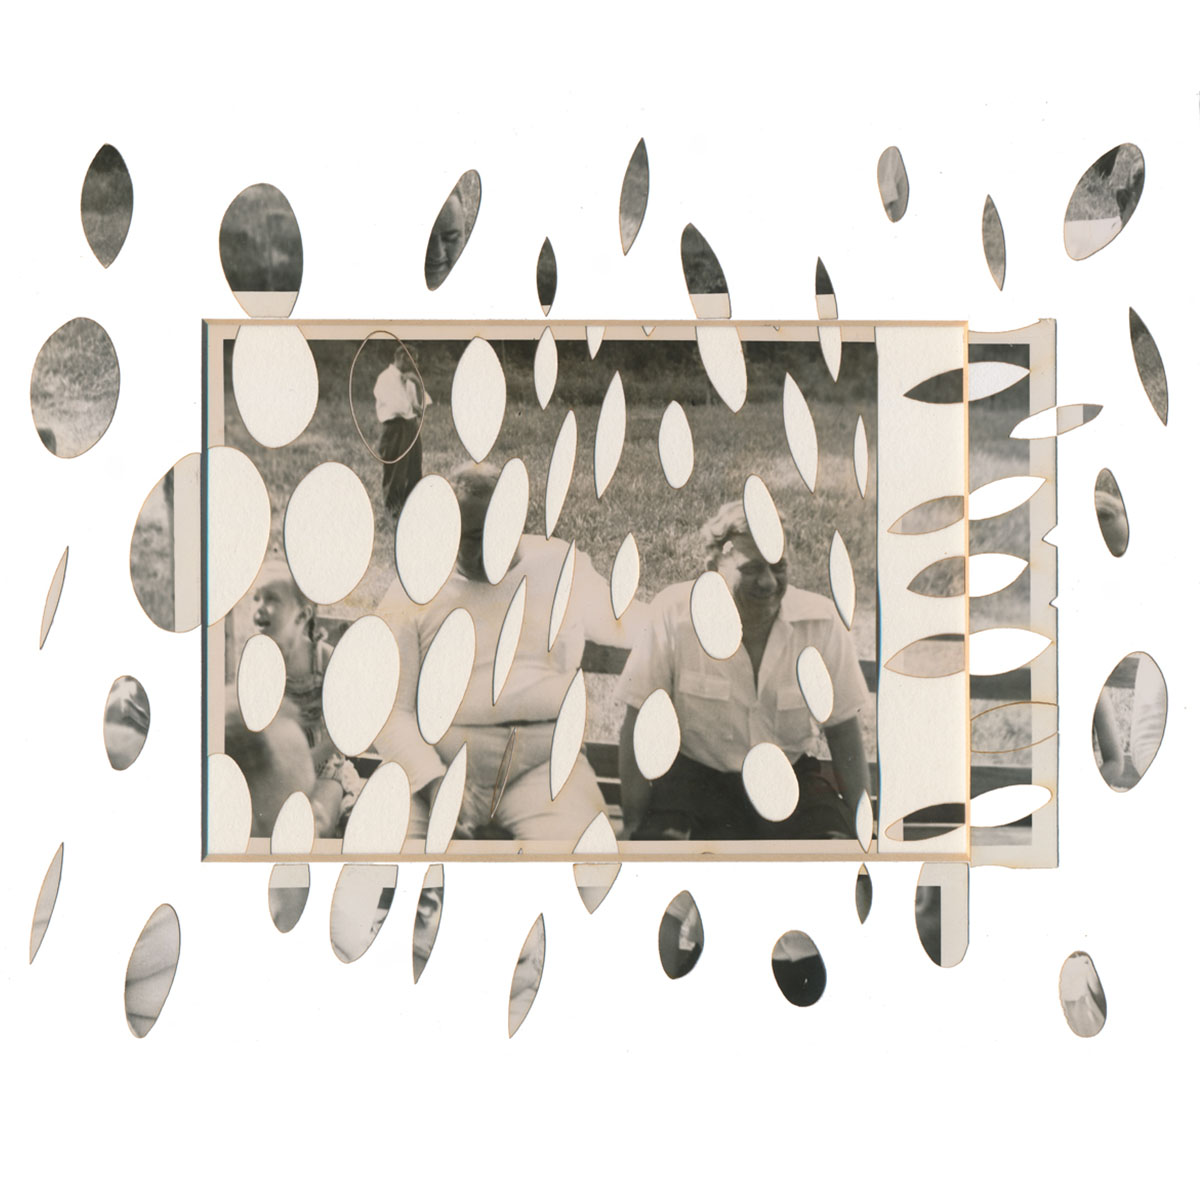 """The original snapshot measures 4"""" x 6"""" while photographic collage bits break the picture plane and float out of the window mat, extending the spatial field."""